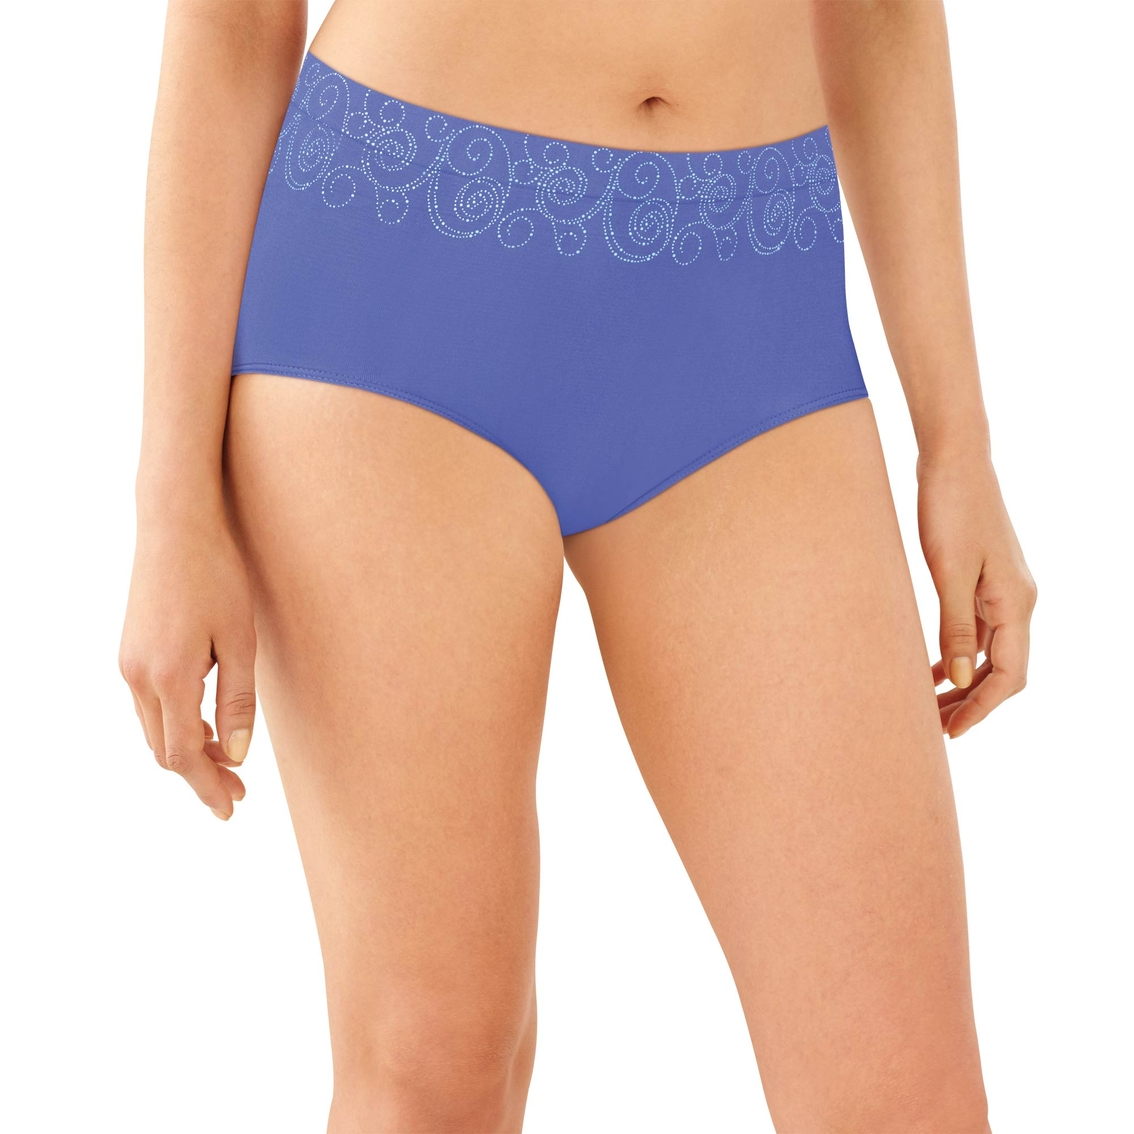 b5ff5667a1a Bali One Smooth U All-over Smoothing Brief Panty